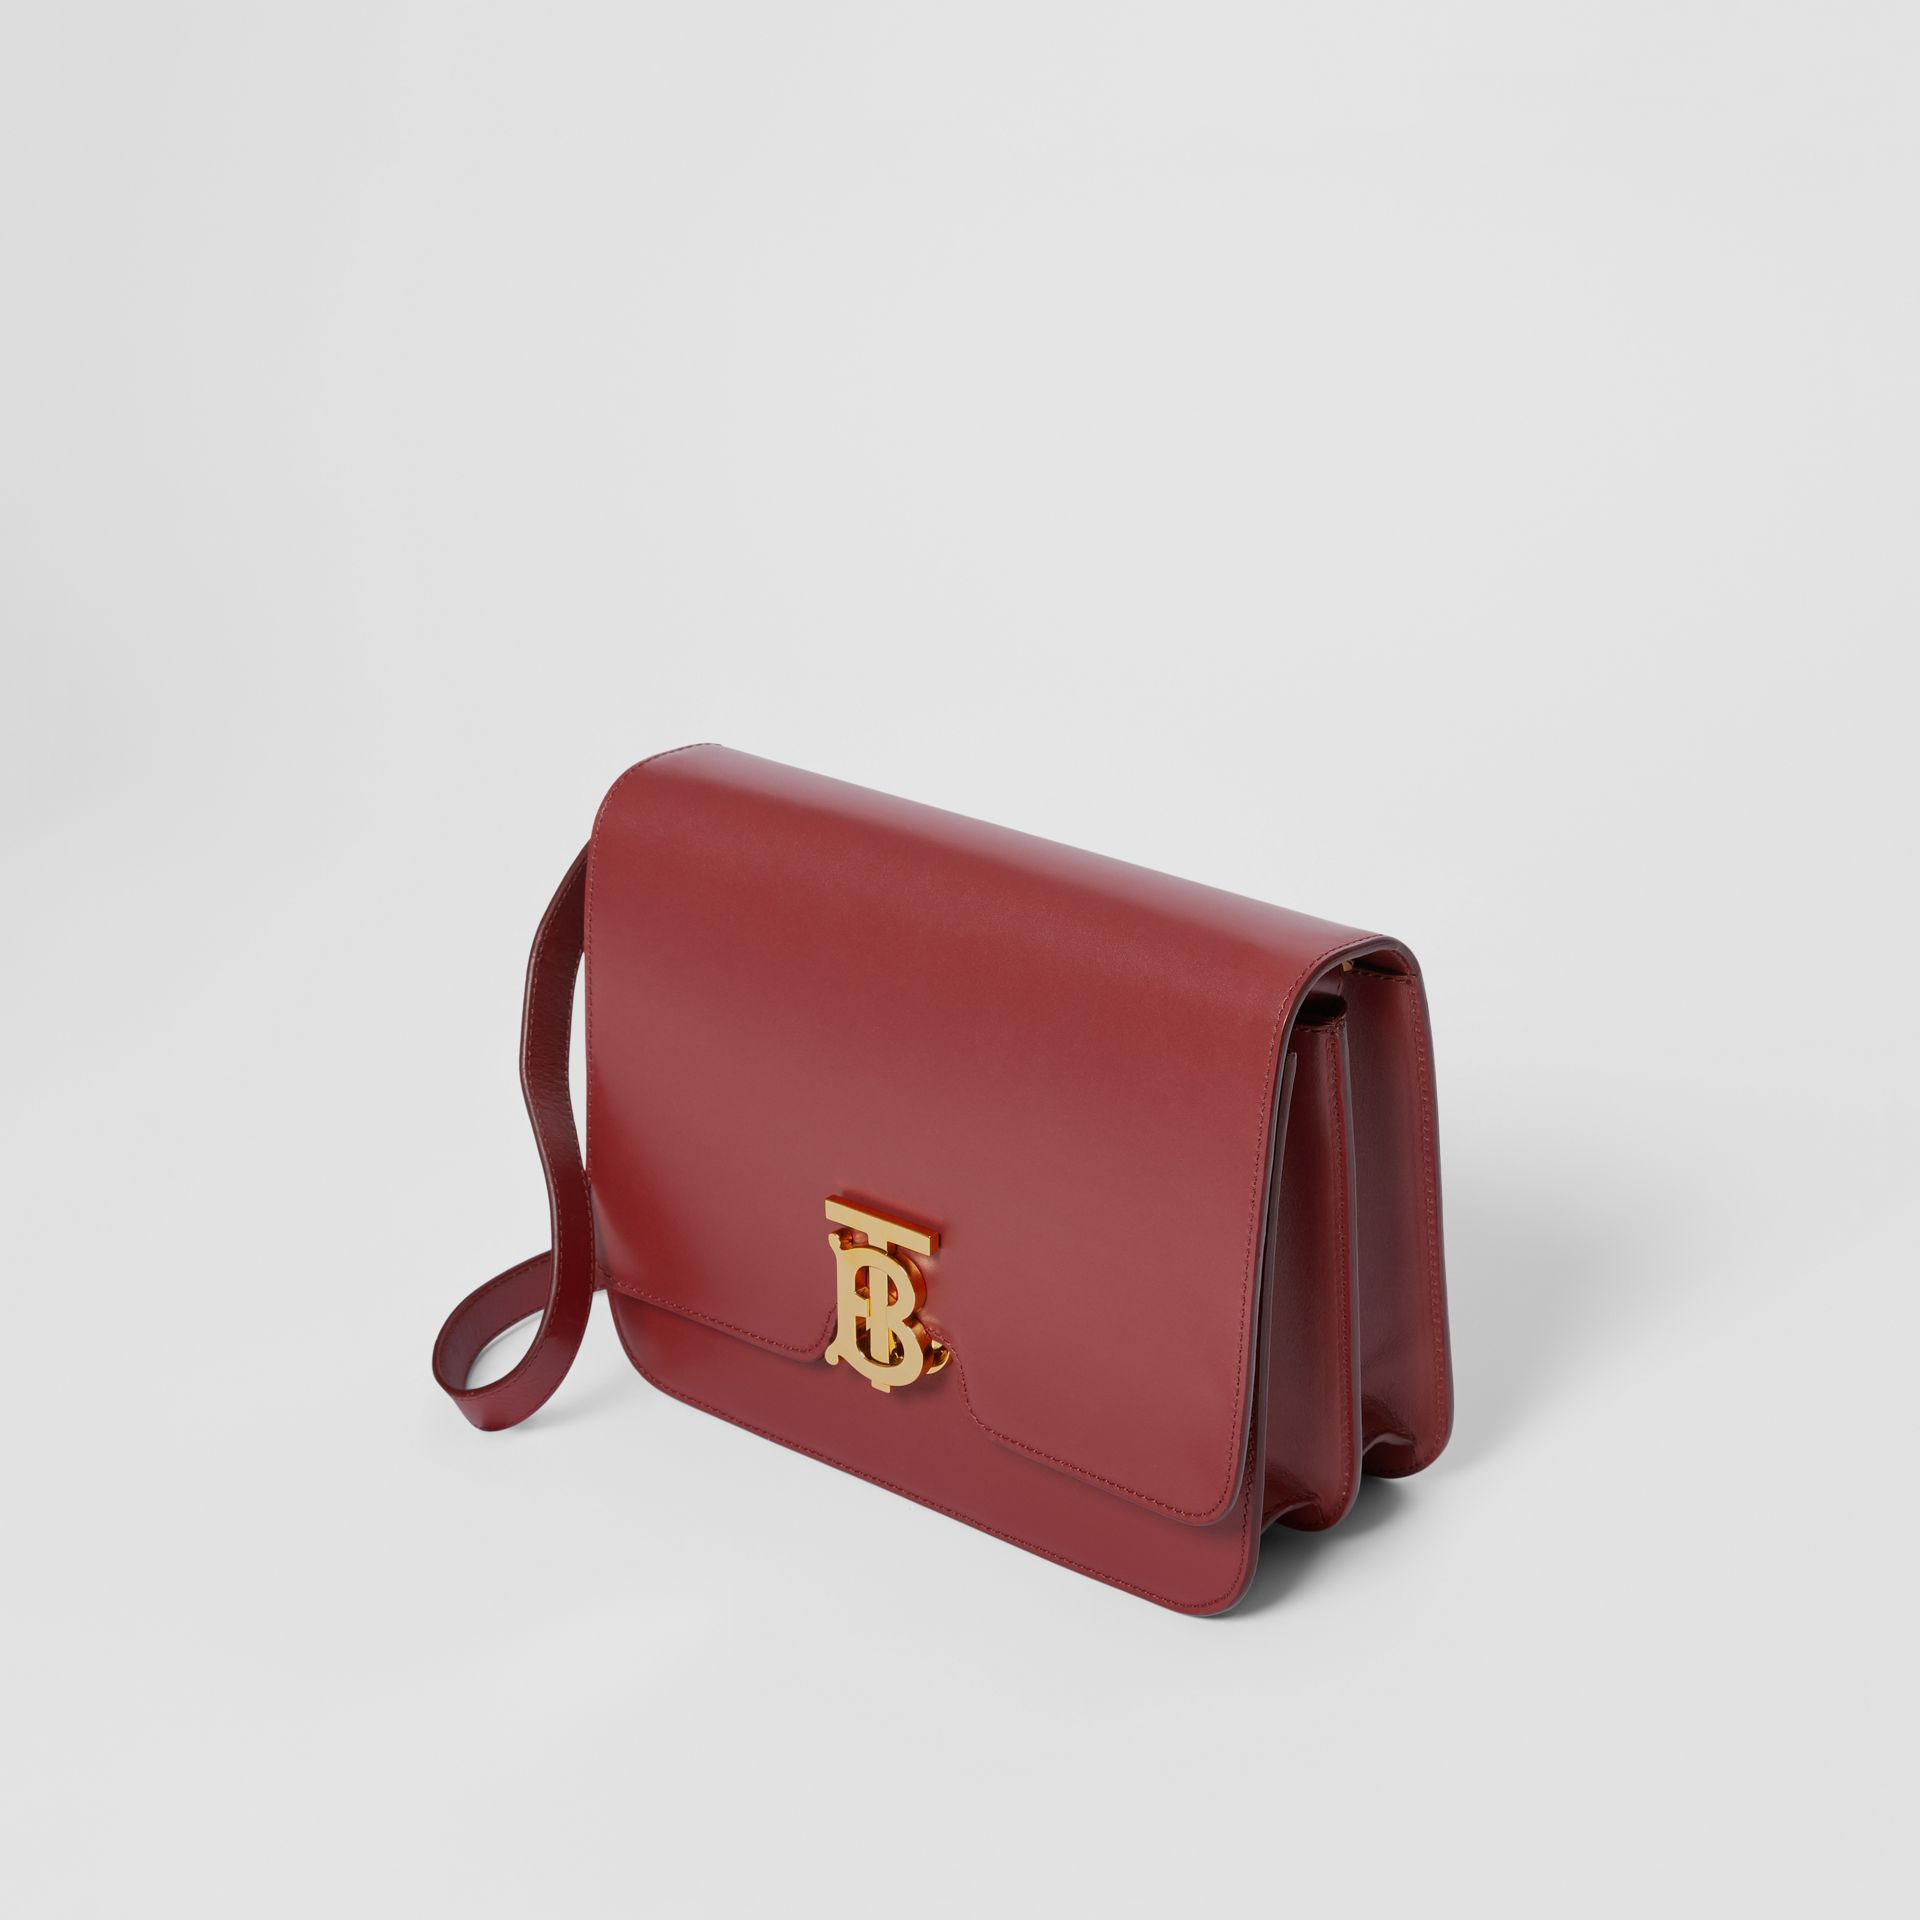 Medium Leather TB Bag in Crimson - Women | Burberry - gallery image 3